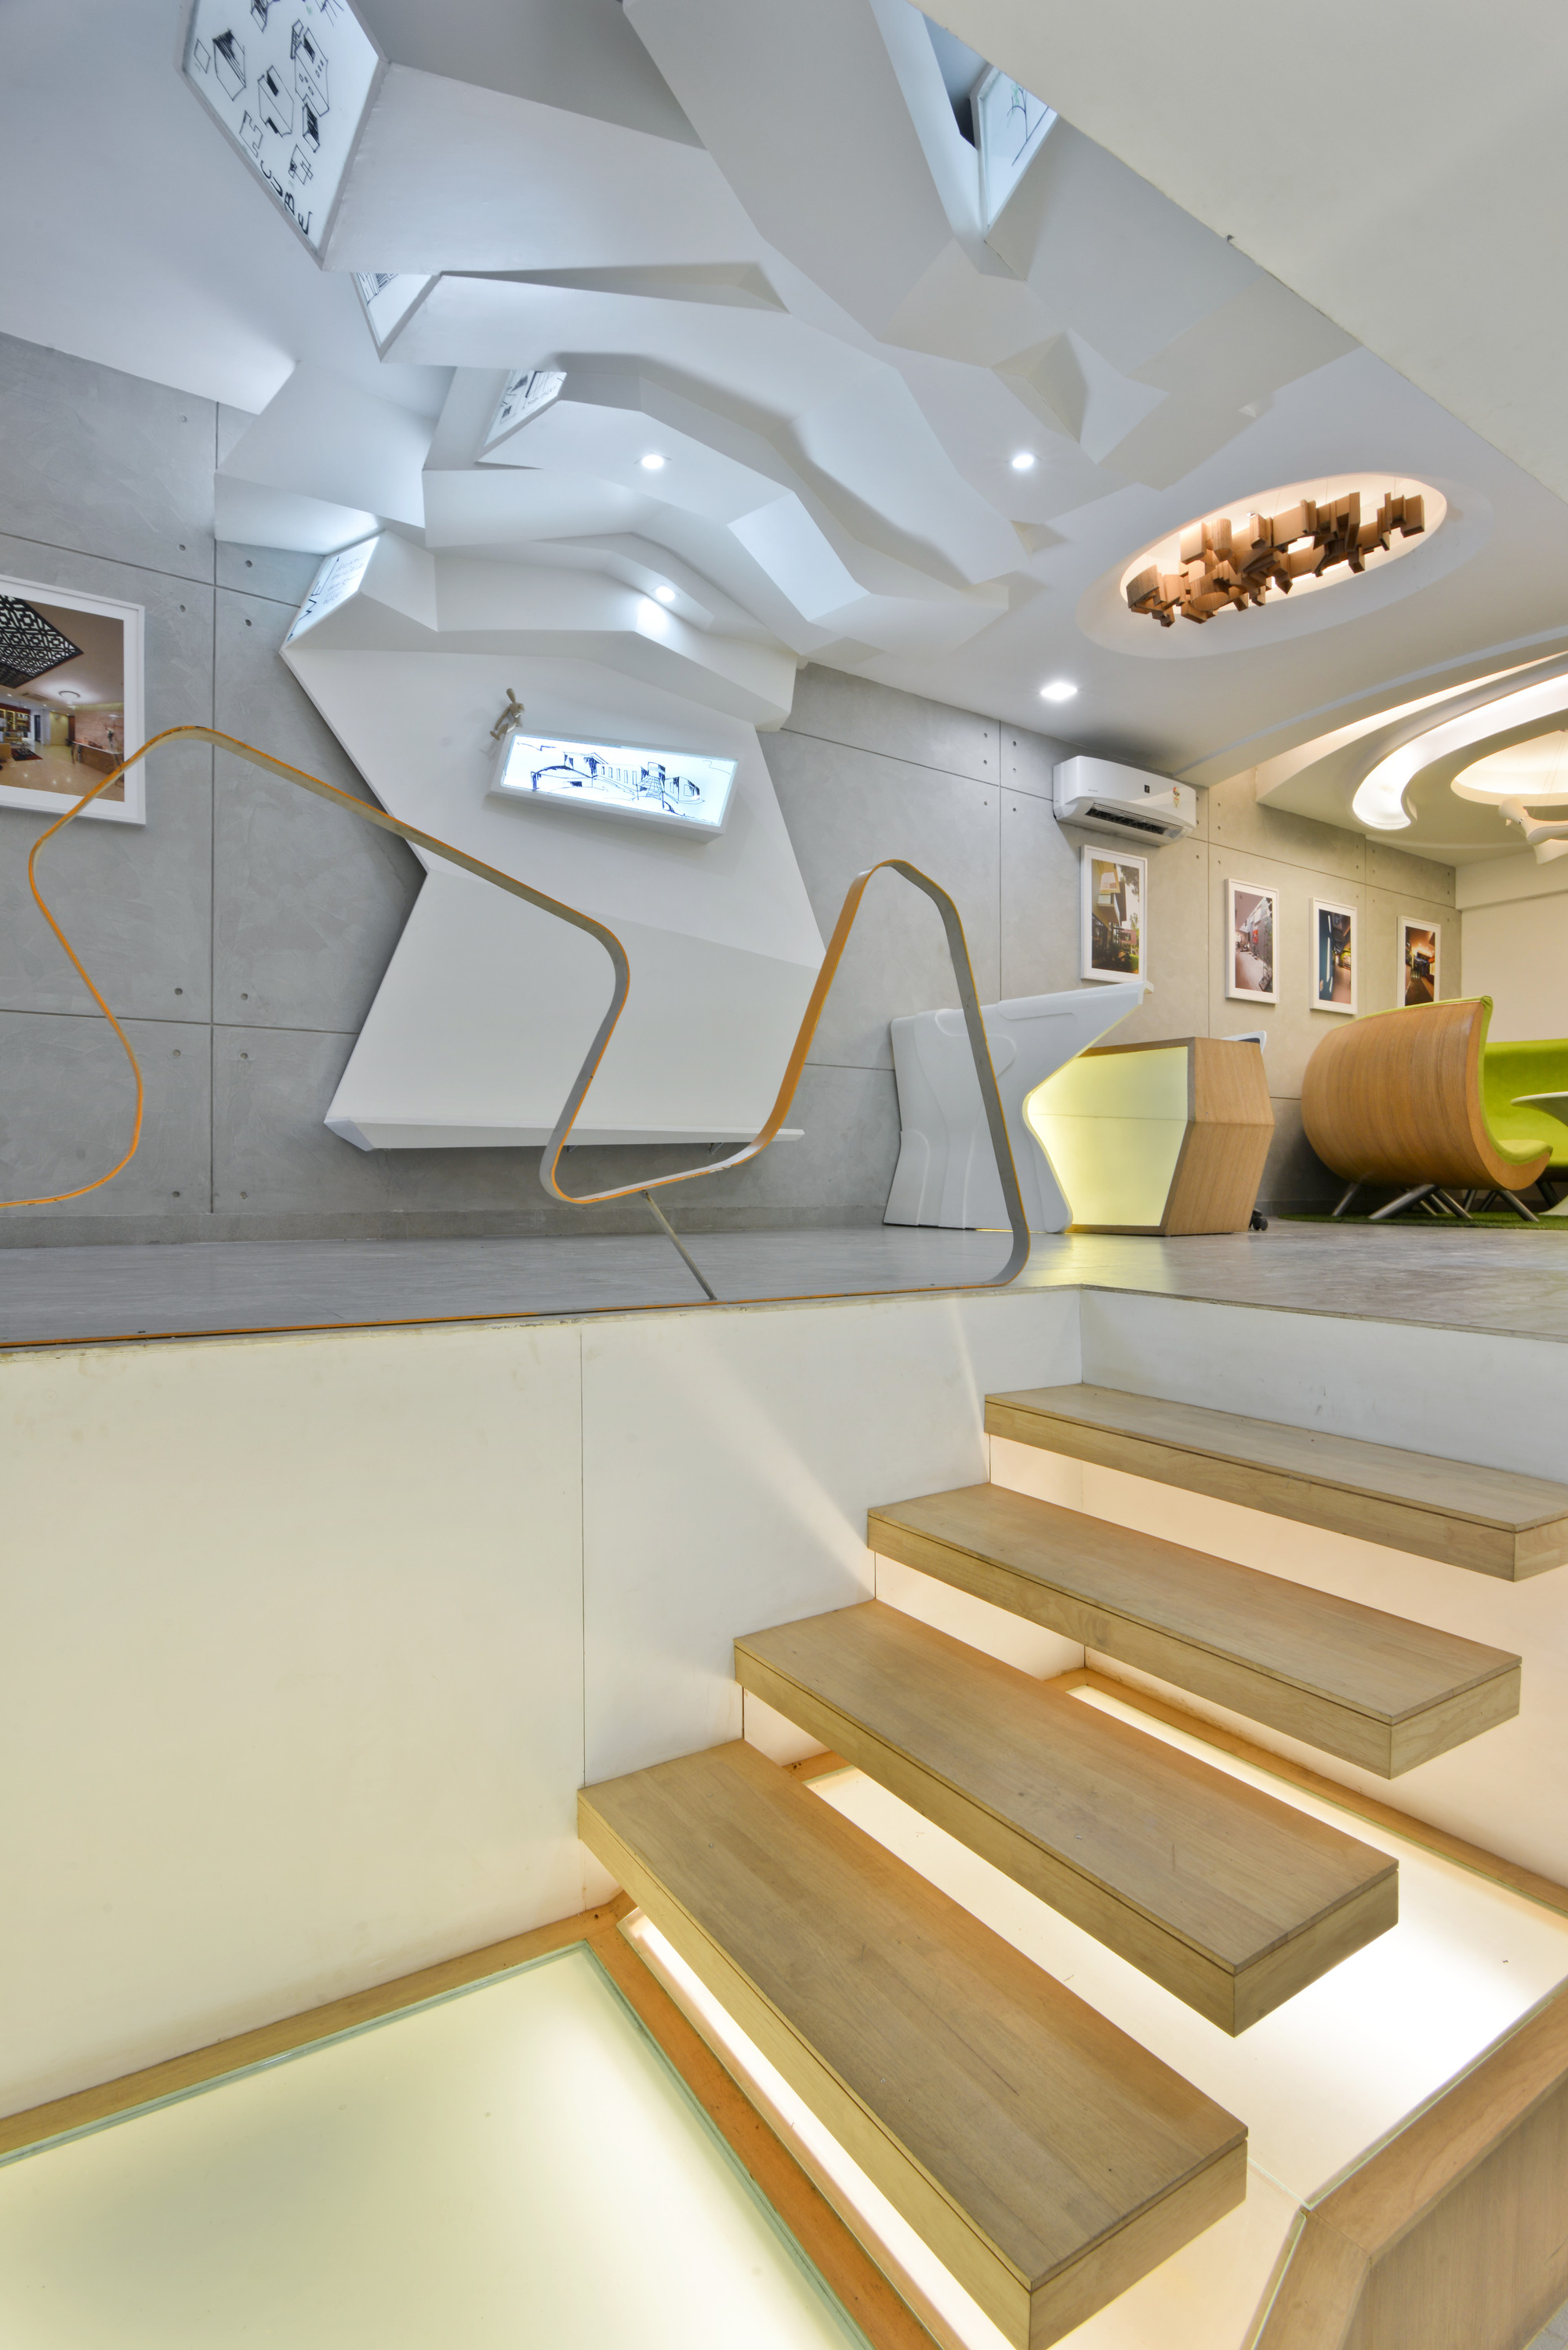 Gallery of architect s office spaces architects ka 6 for Spaces architects safdarjung